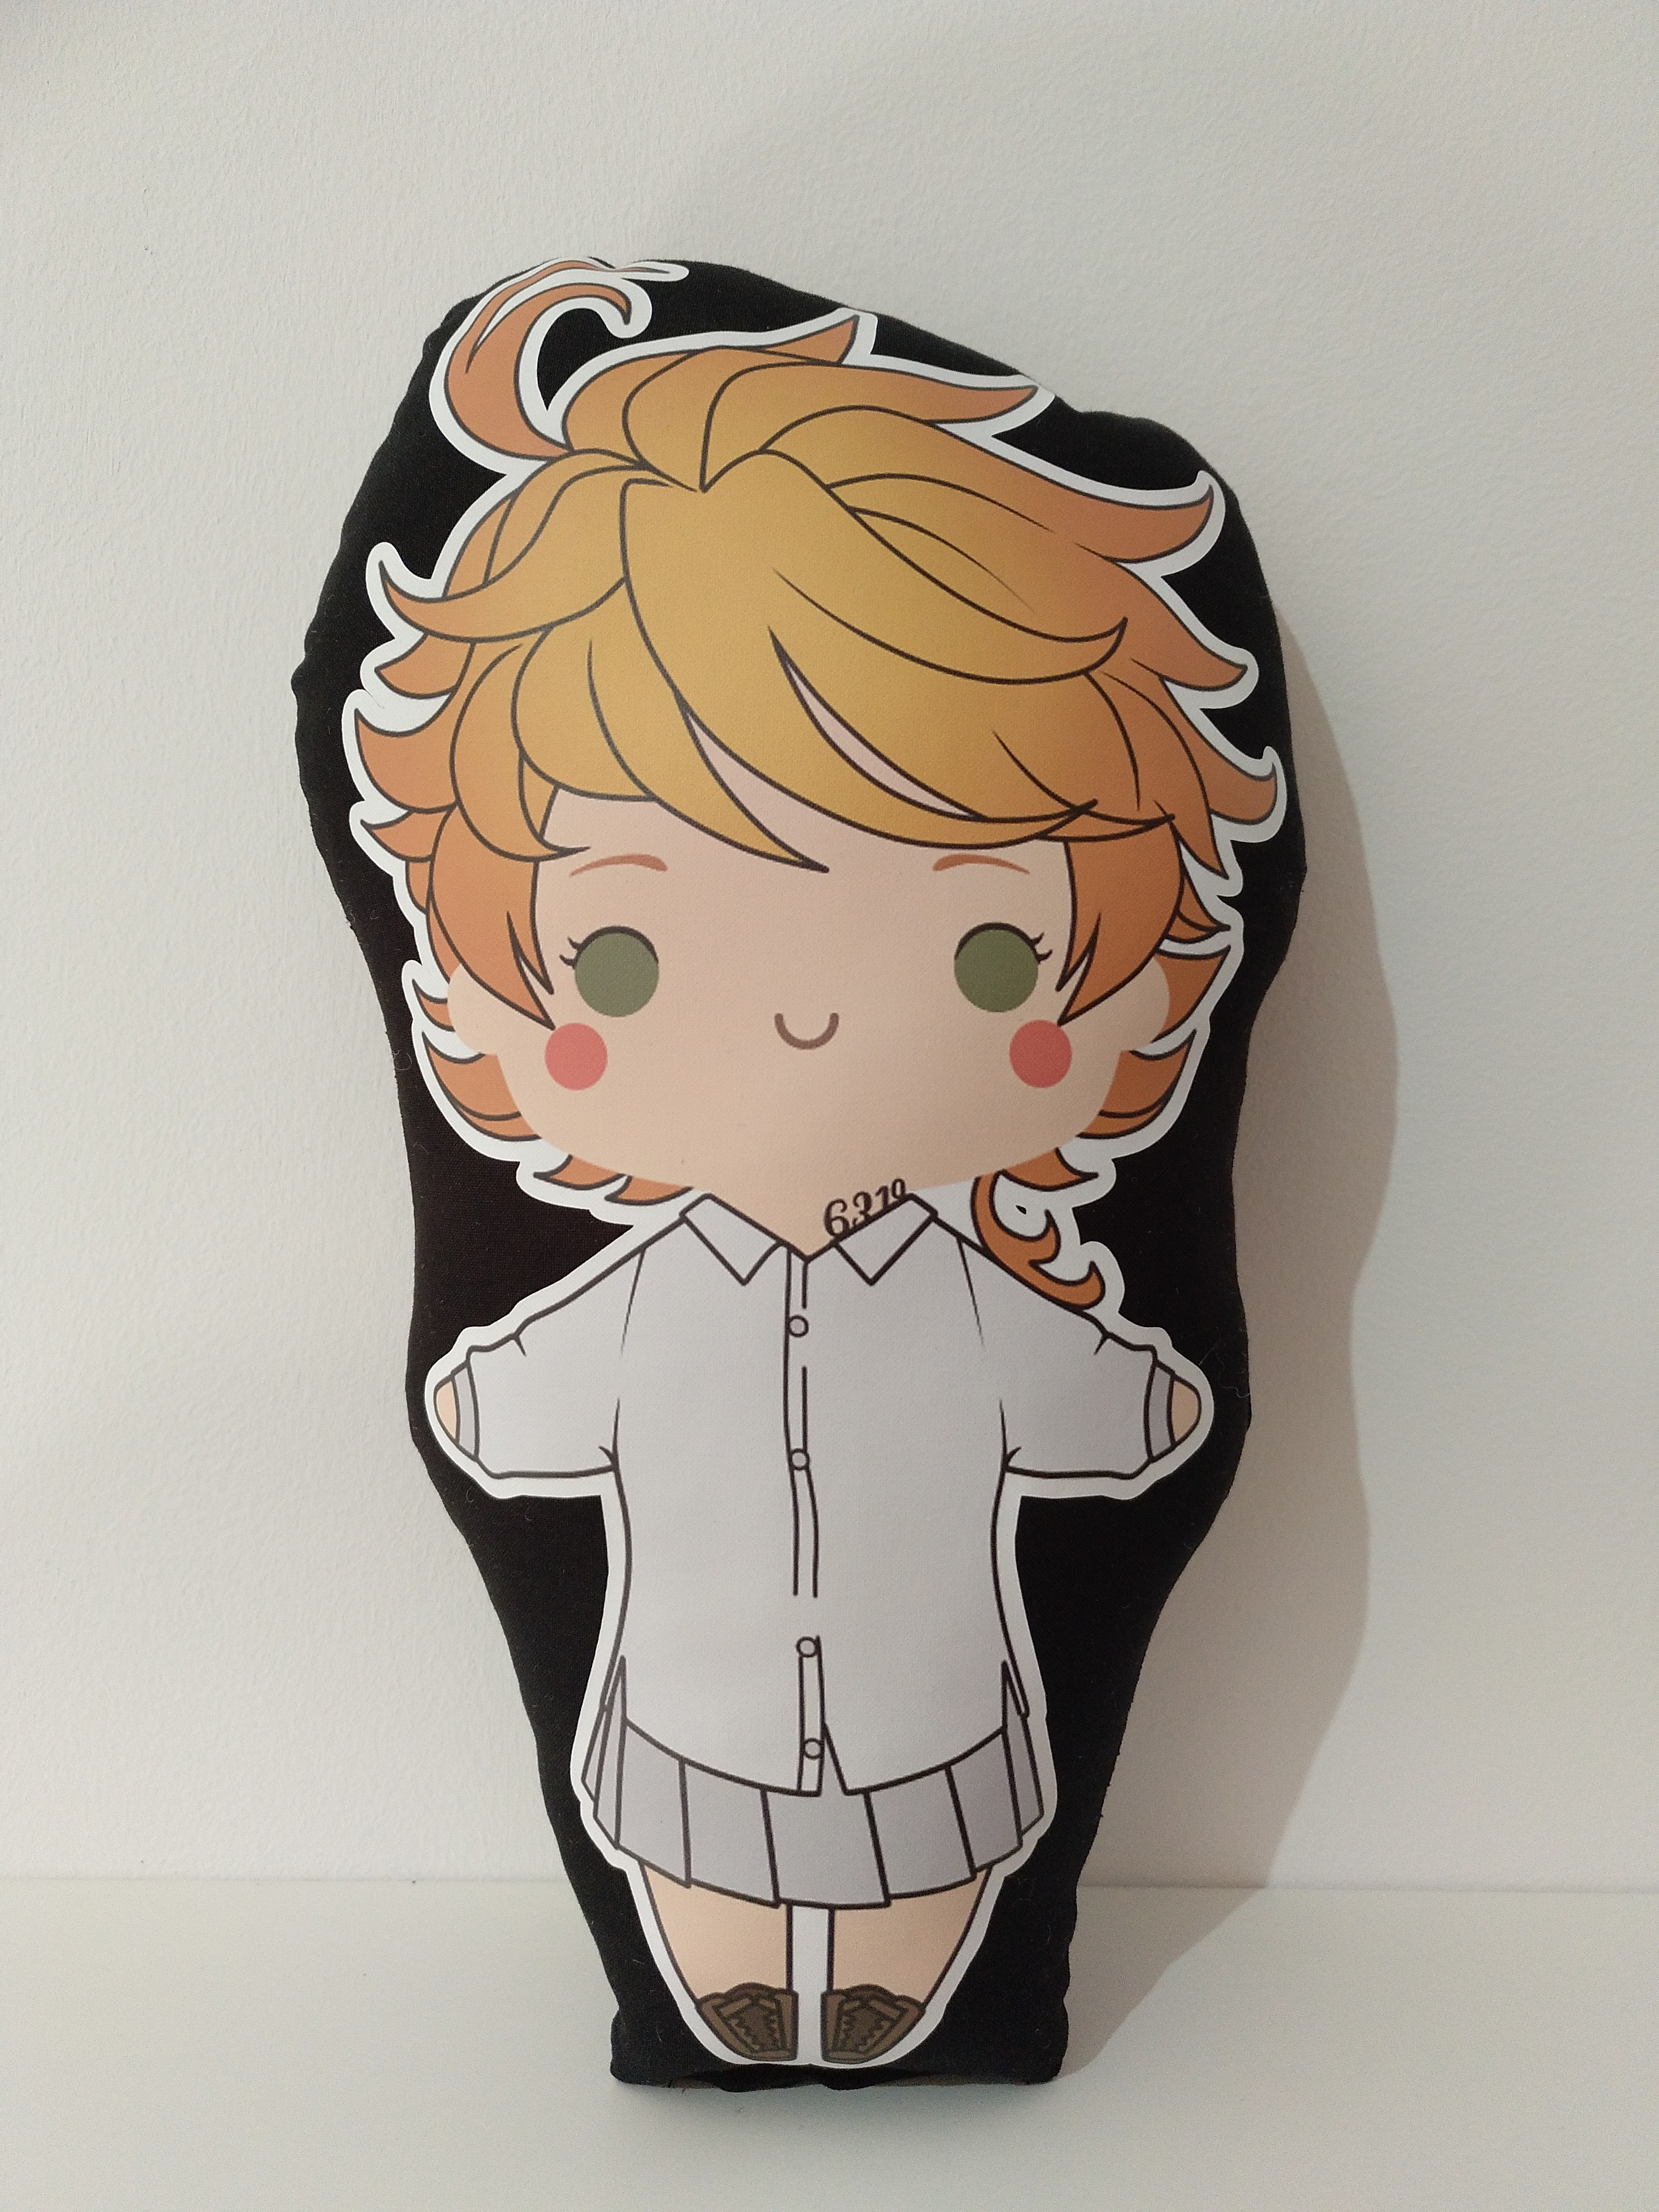 The Promised Neverland - Pillows / Plushies from MibuStore